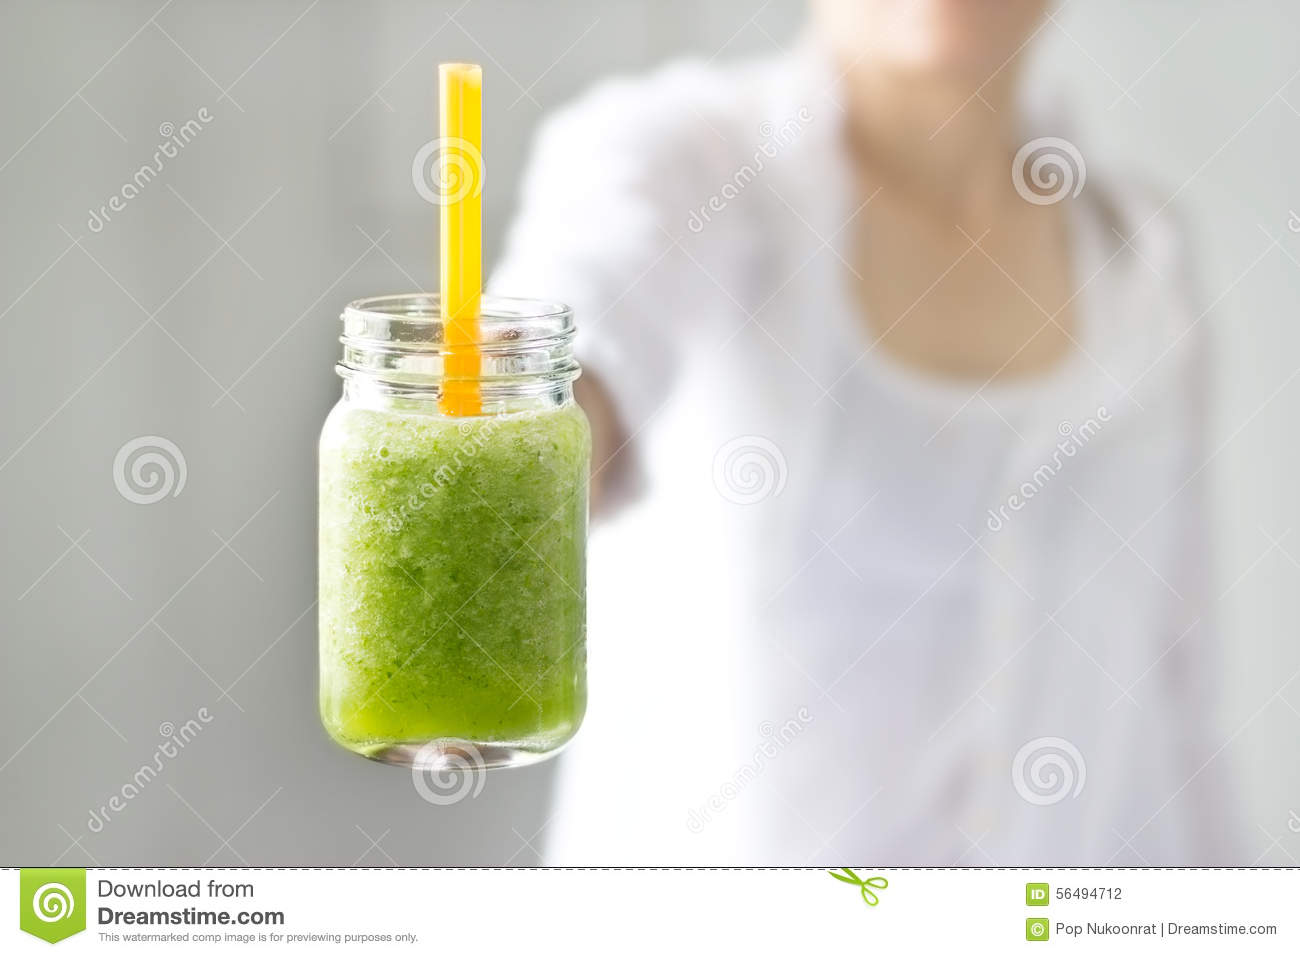 Squishy Mushy Smoothie : Fresh Smoothie Detox Vegetable Lettuce And Cucumber In Hand On The Nature Background Stock Photo ...